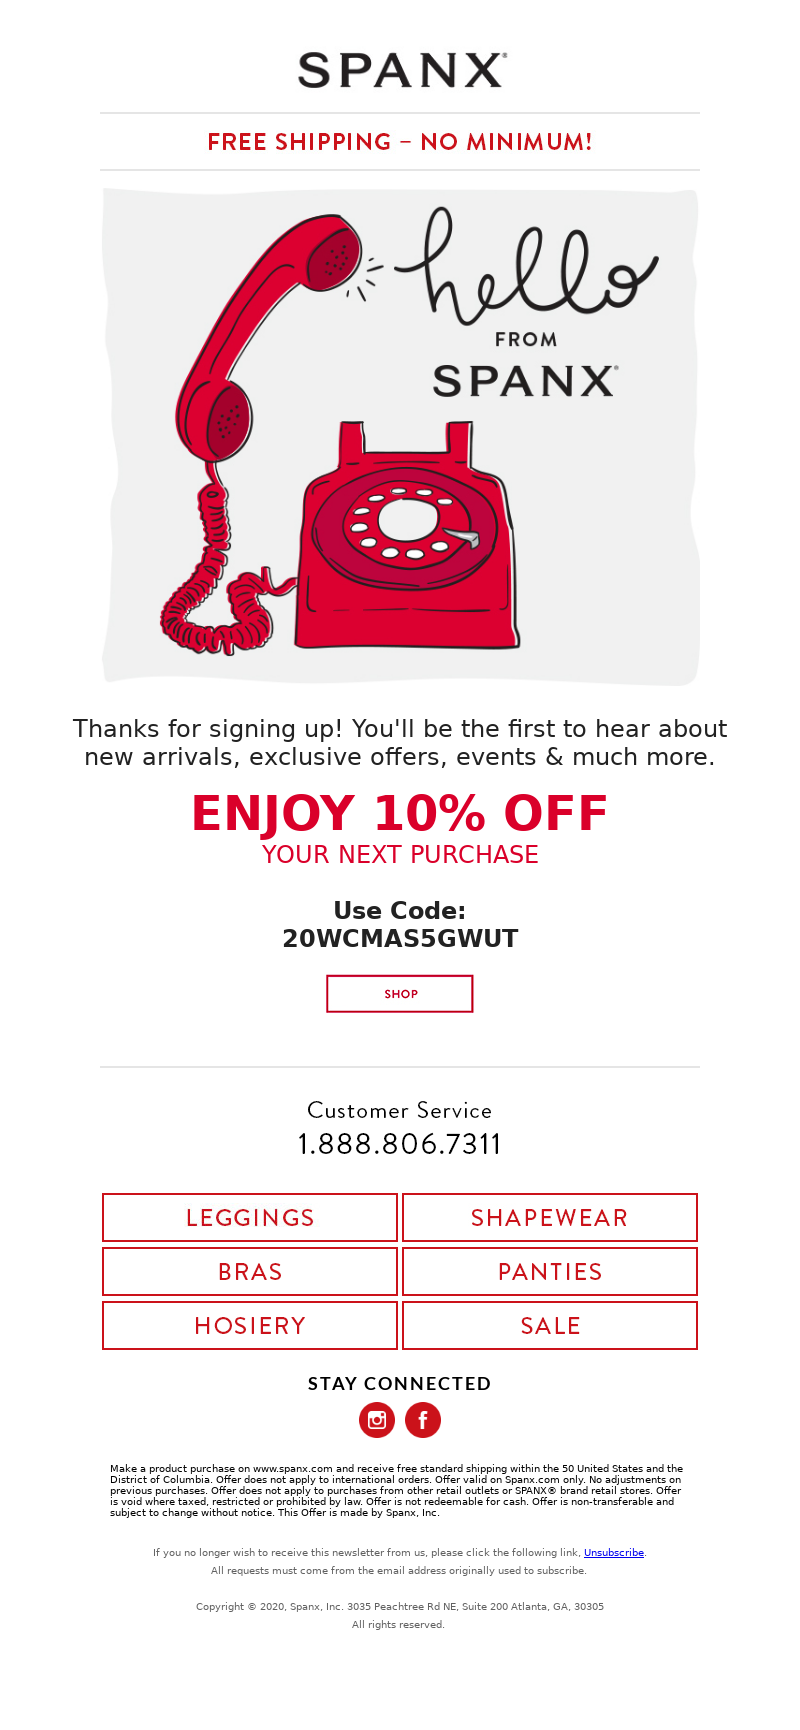 Spanx - Welcome to Spanx! Enjoy 10% Off